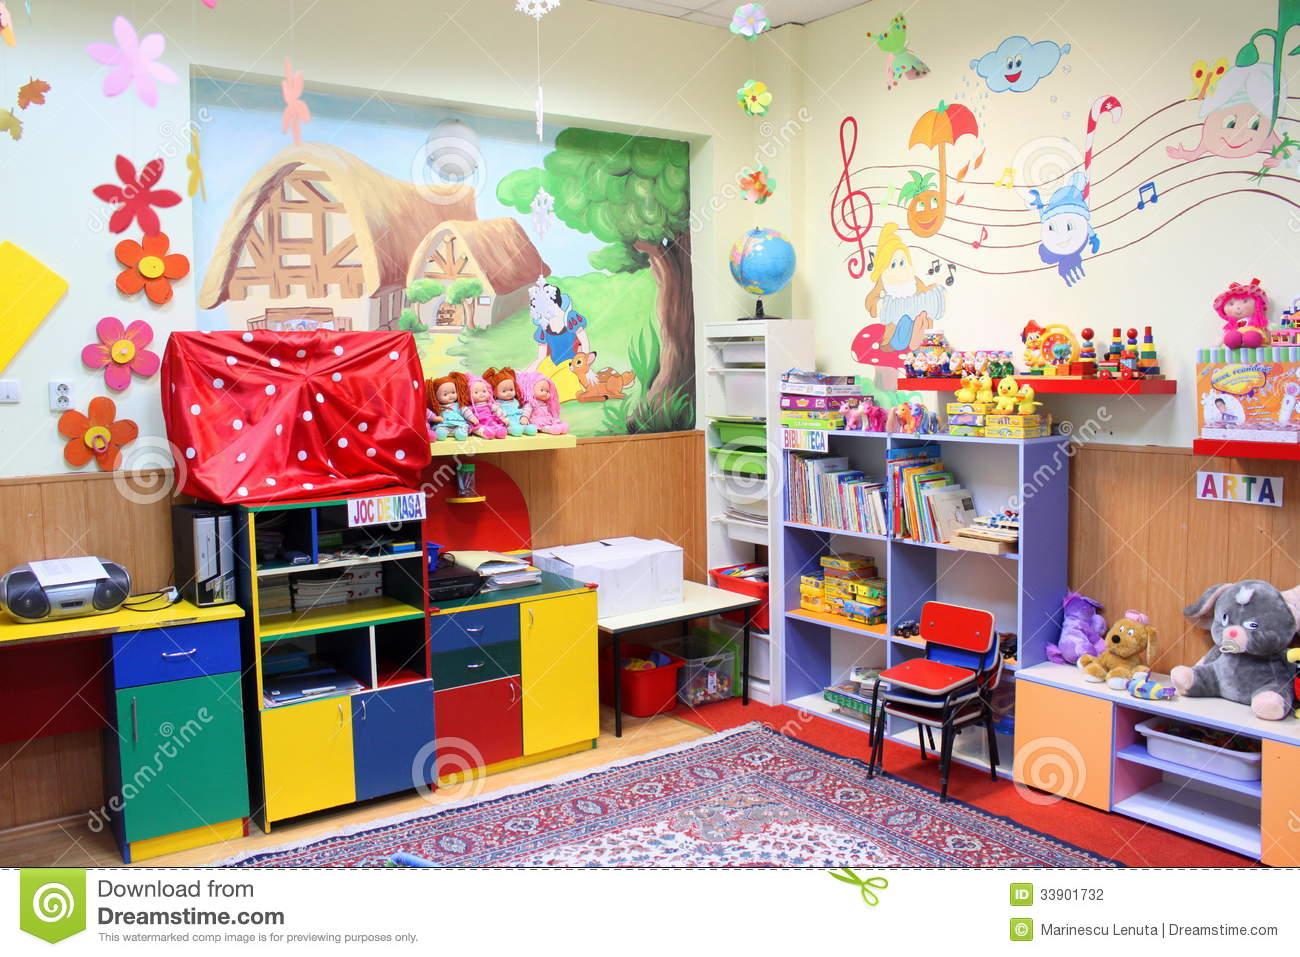 Preschool classroom : classroom decoration ideas for preschool - www.pureclipart.com